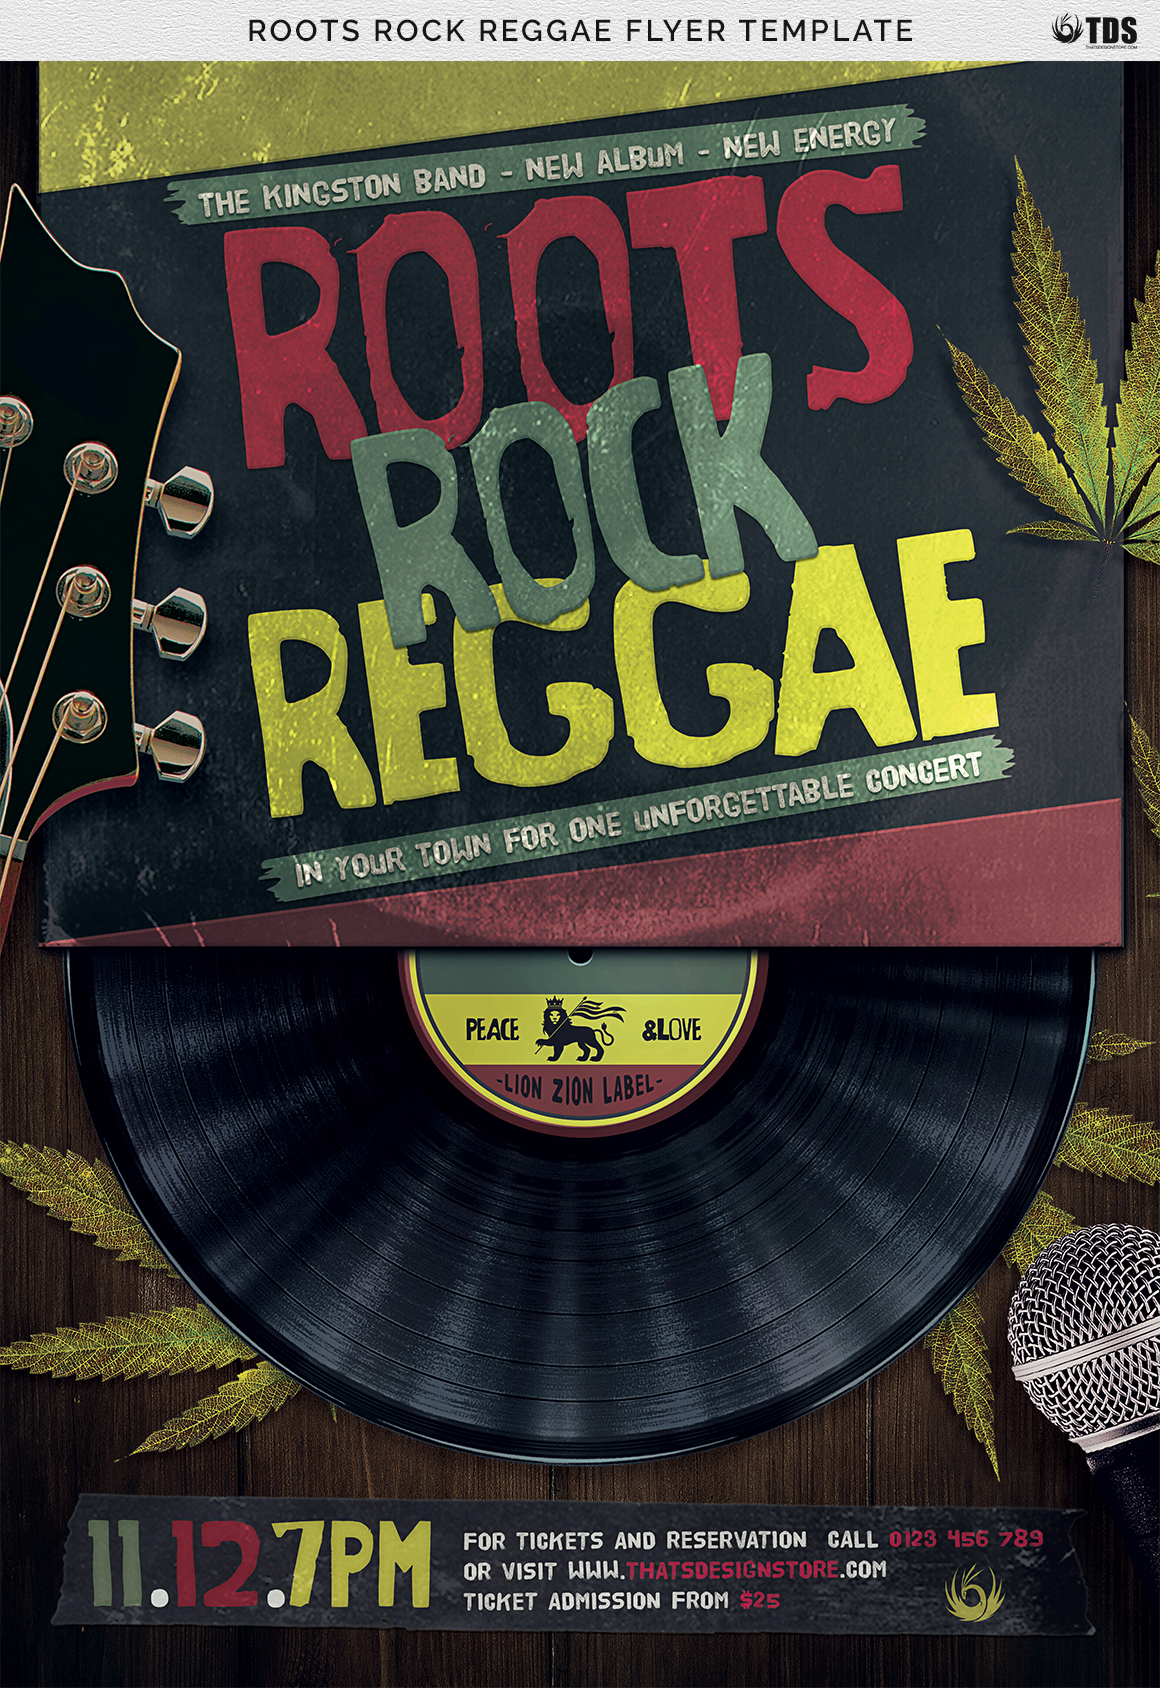 Roots Rock Reggae Flyer Template example image 2